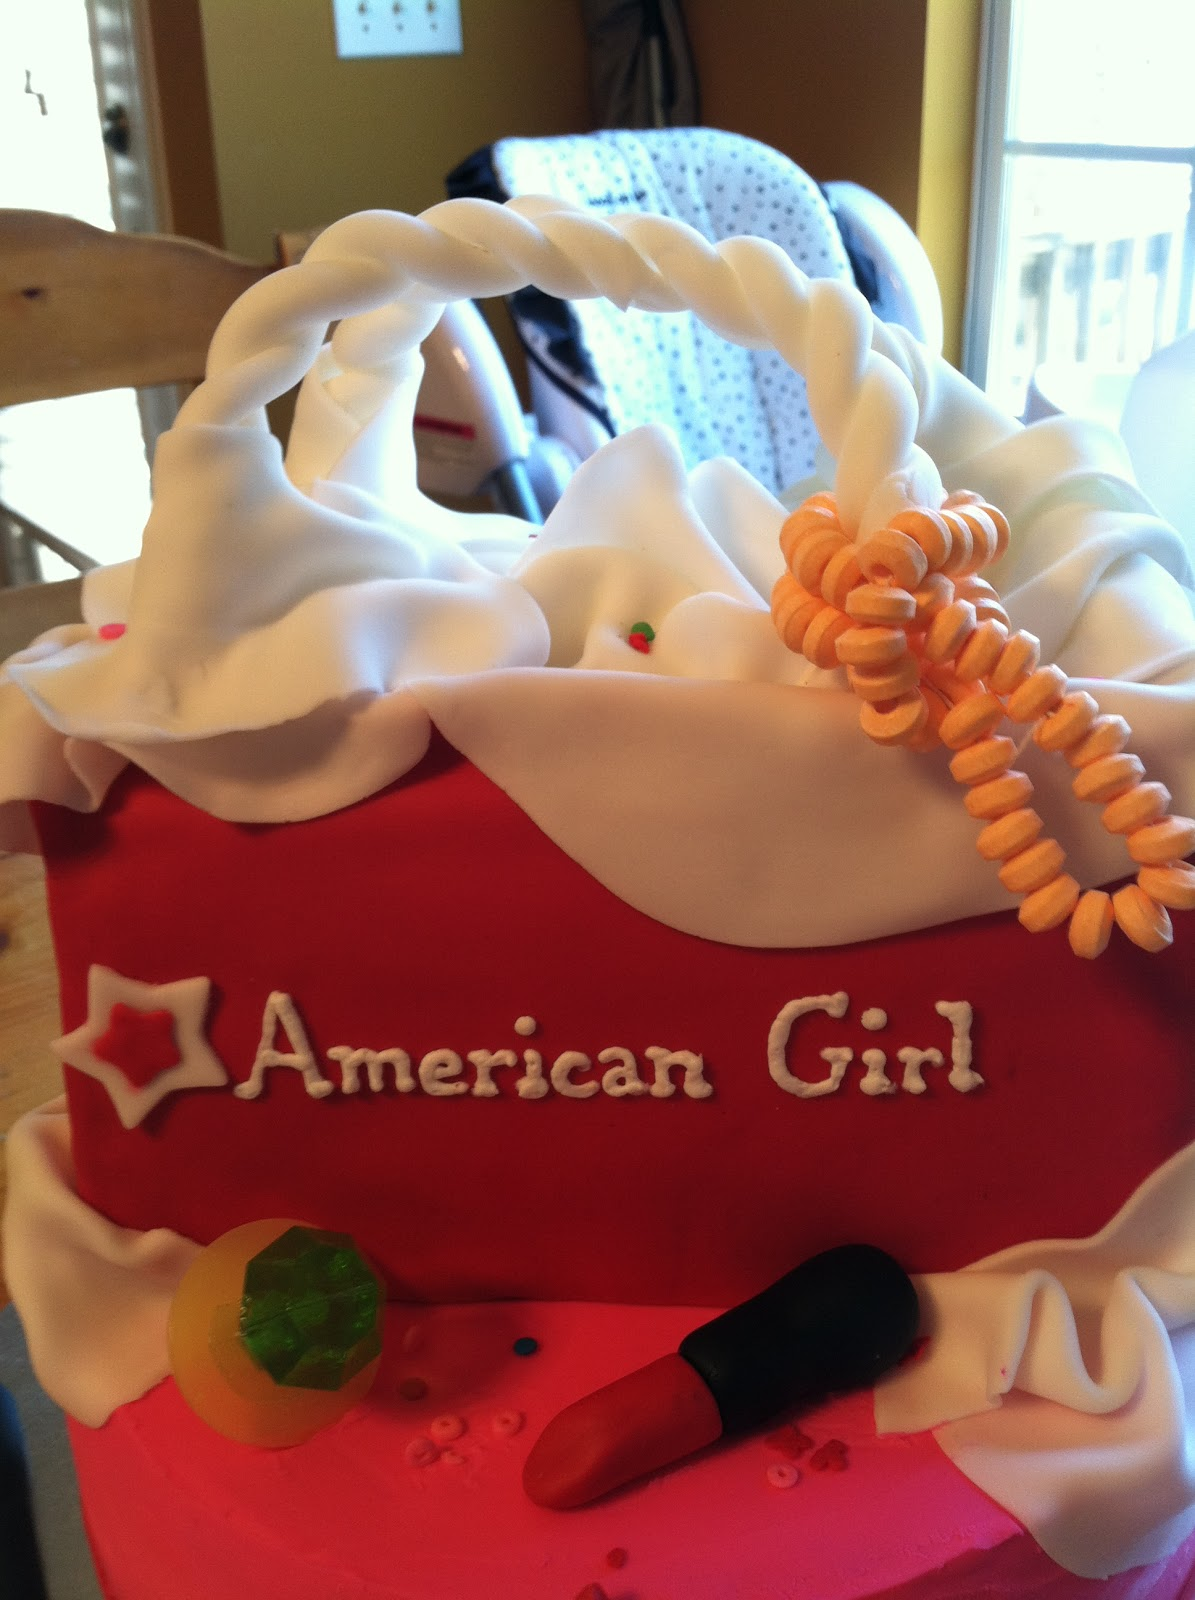 Introducing American Girl Cake For An American Girl